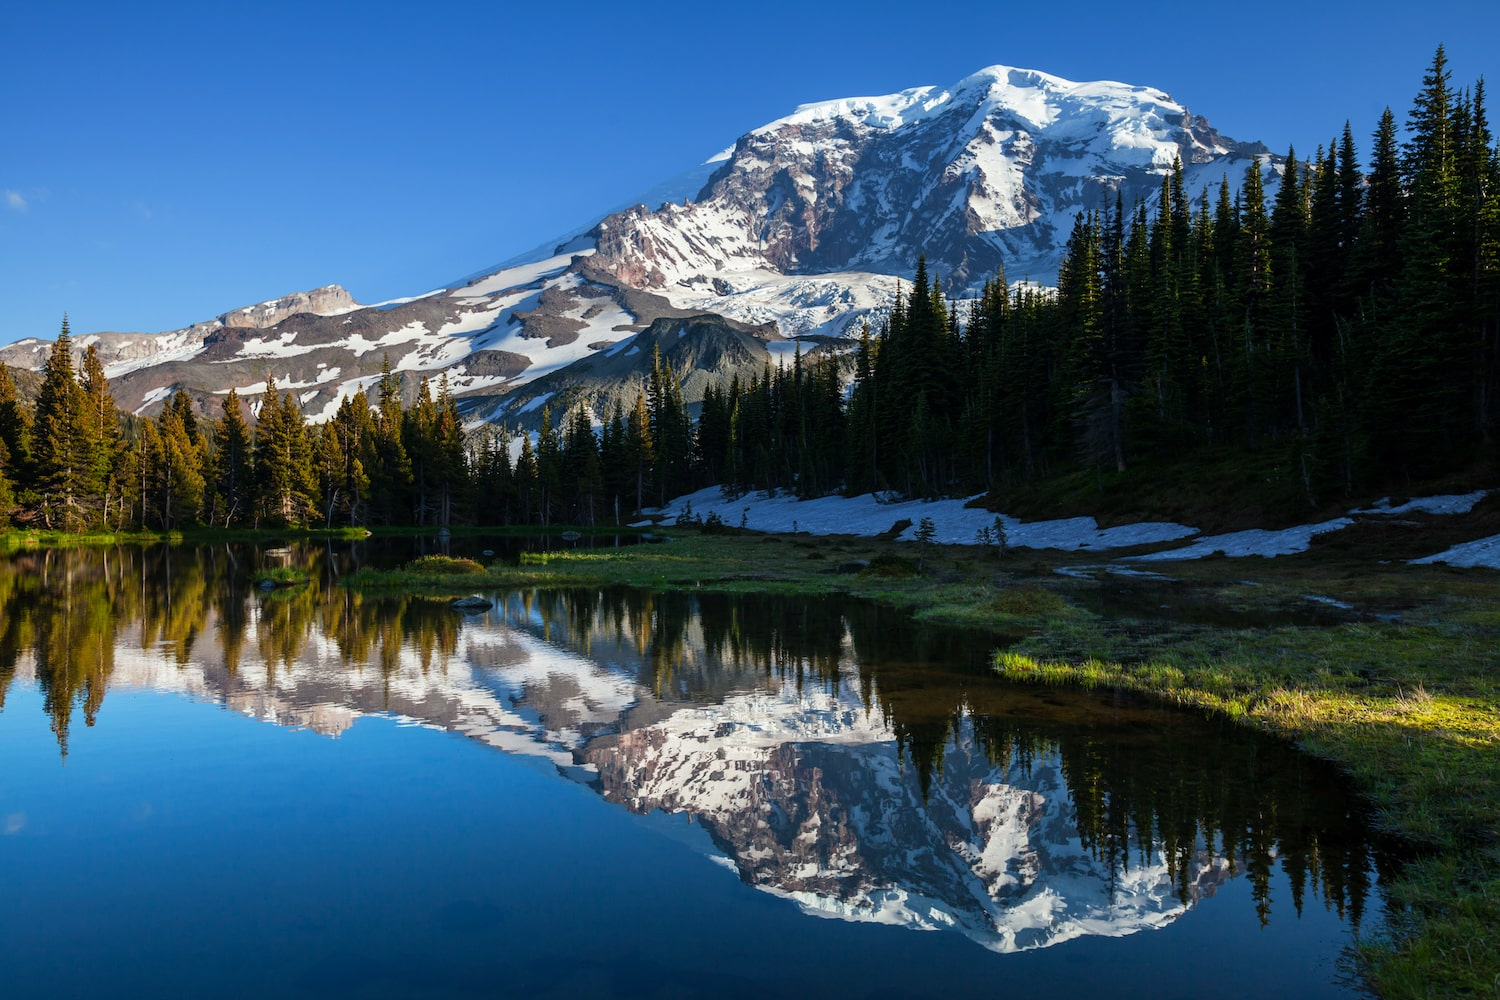 hotels near mt rainier national park